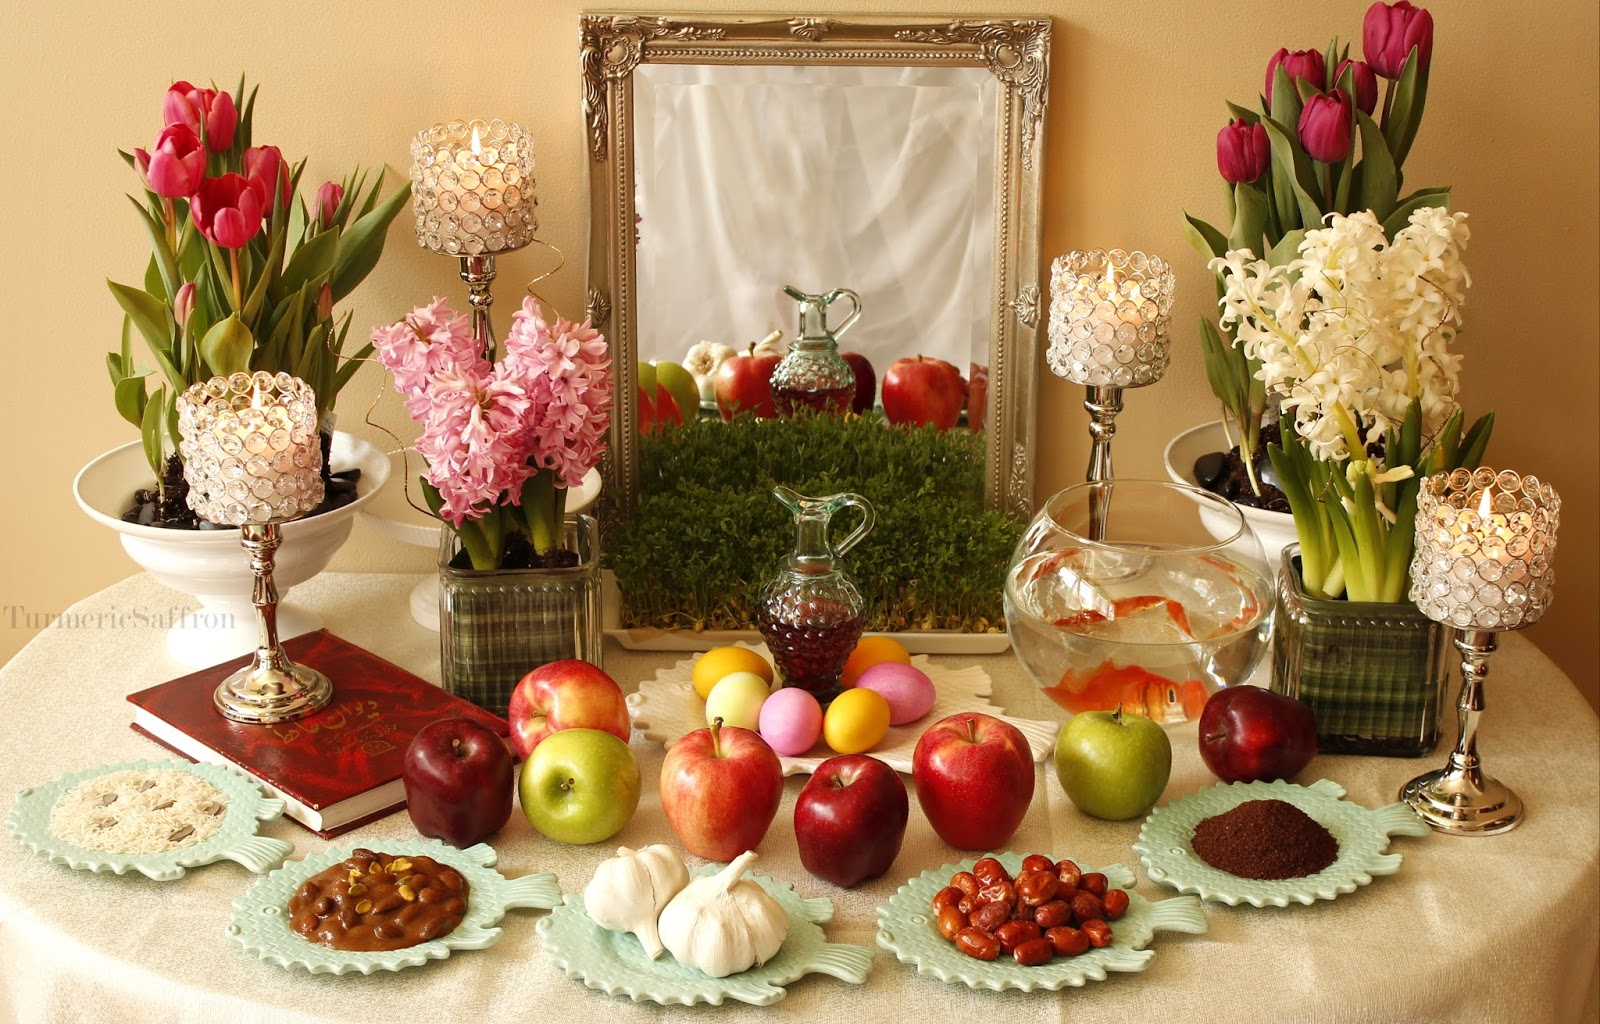 Nowruz (Persian New Year): March 20